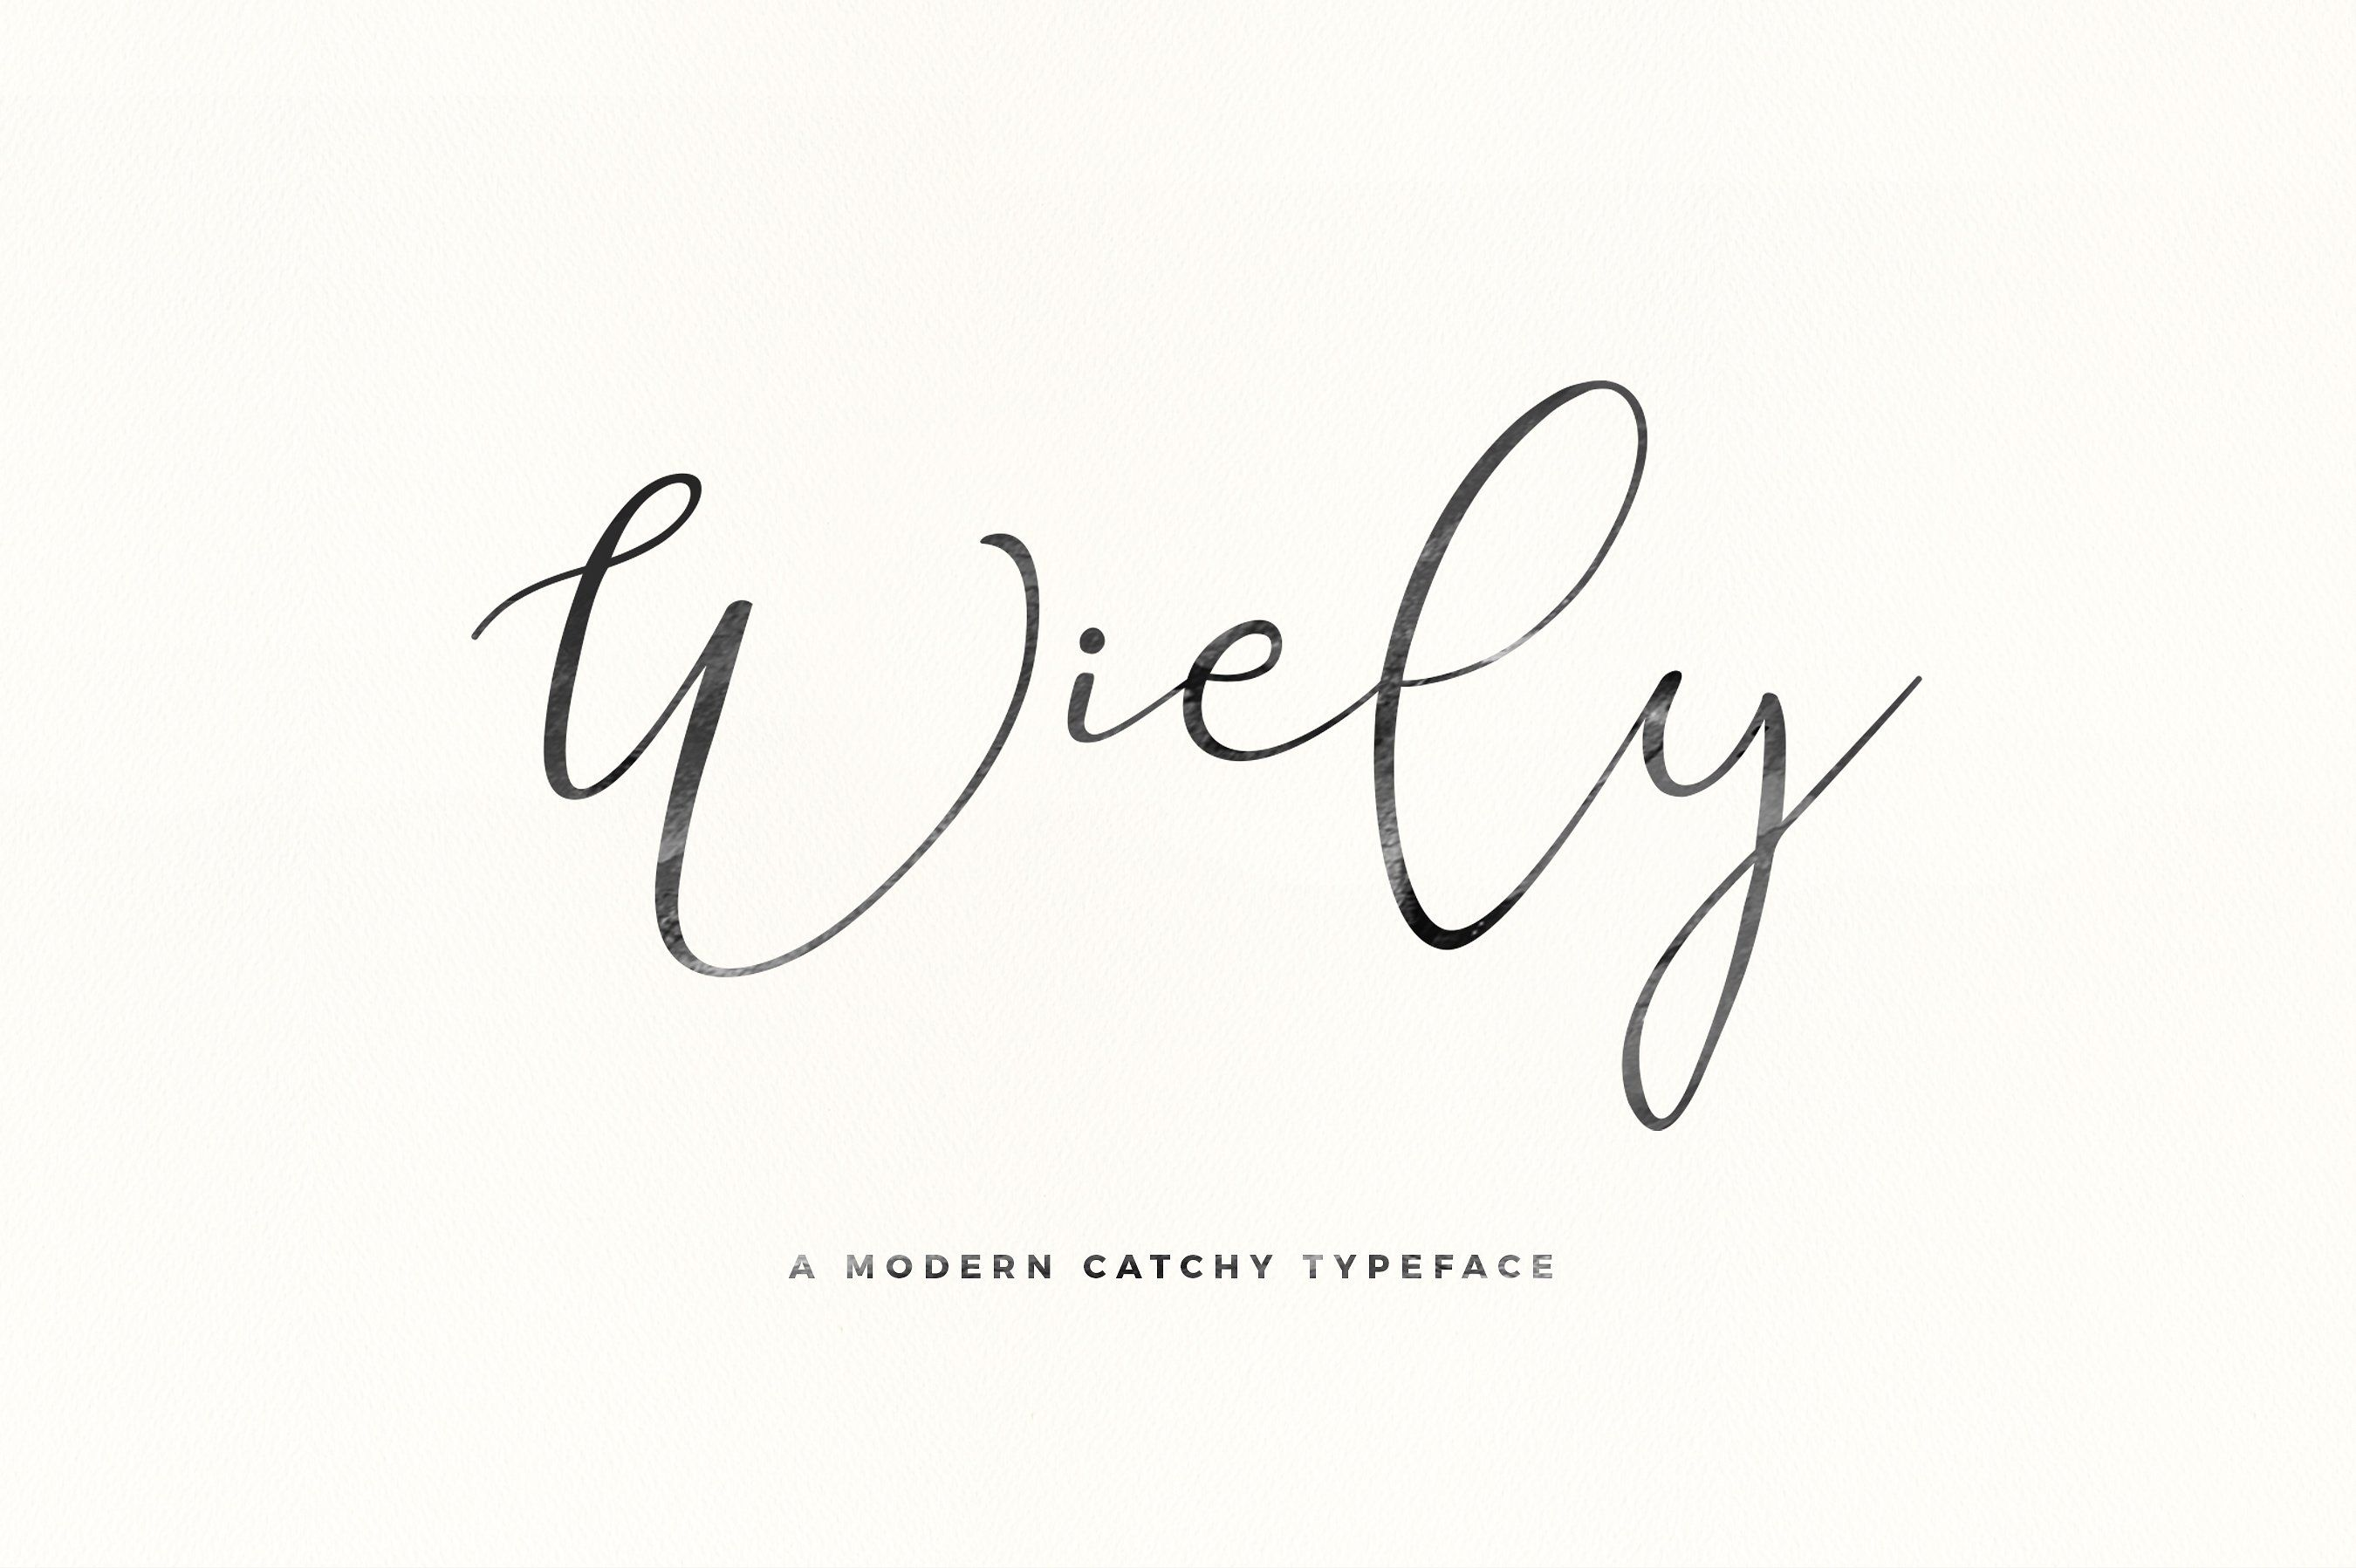 Good Font Combinations For Wedding Invitations: Holla Its Miss Wiely Here, A Modern Cacthy Typeface